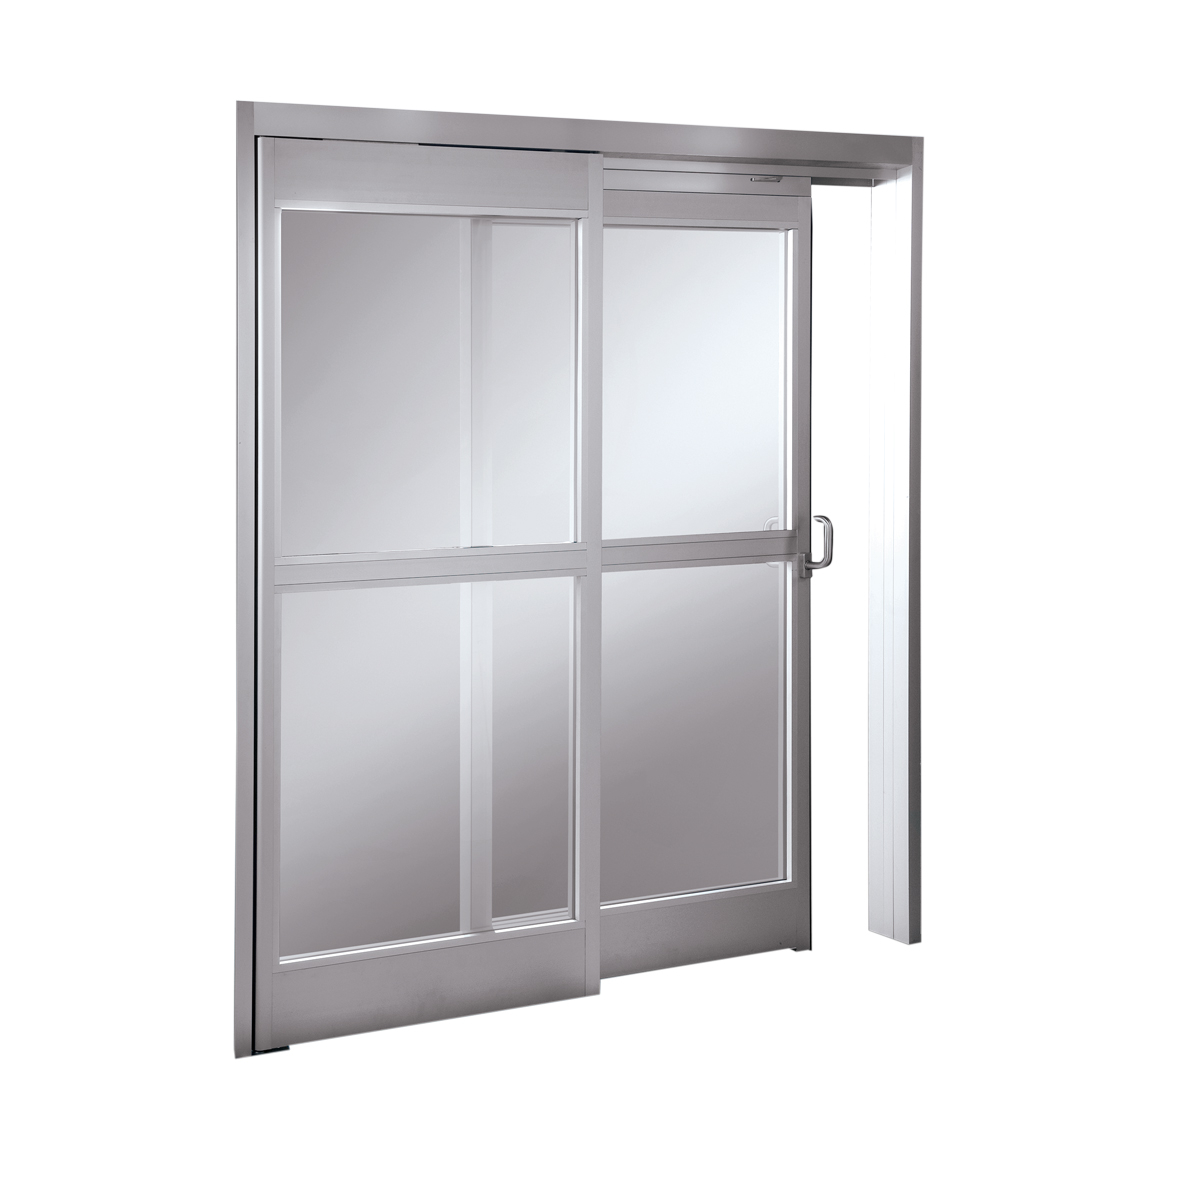 Dorma Icu 300 300t Manual Sliding Door With Breakout